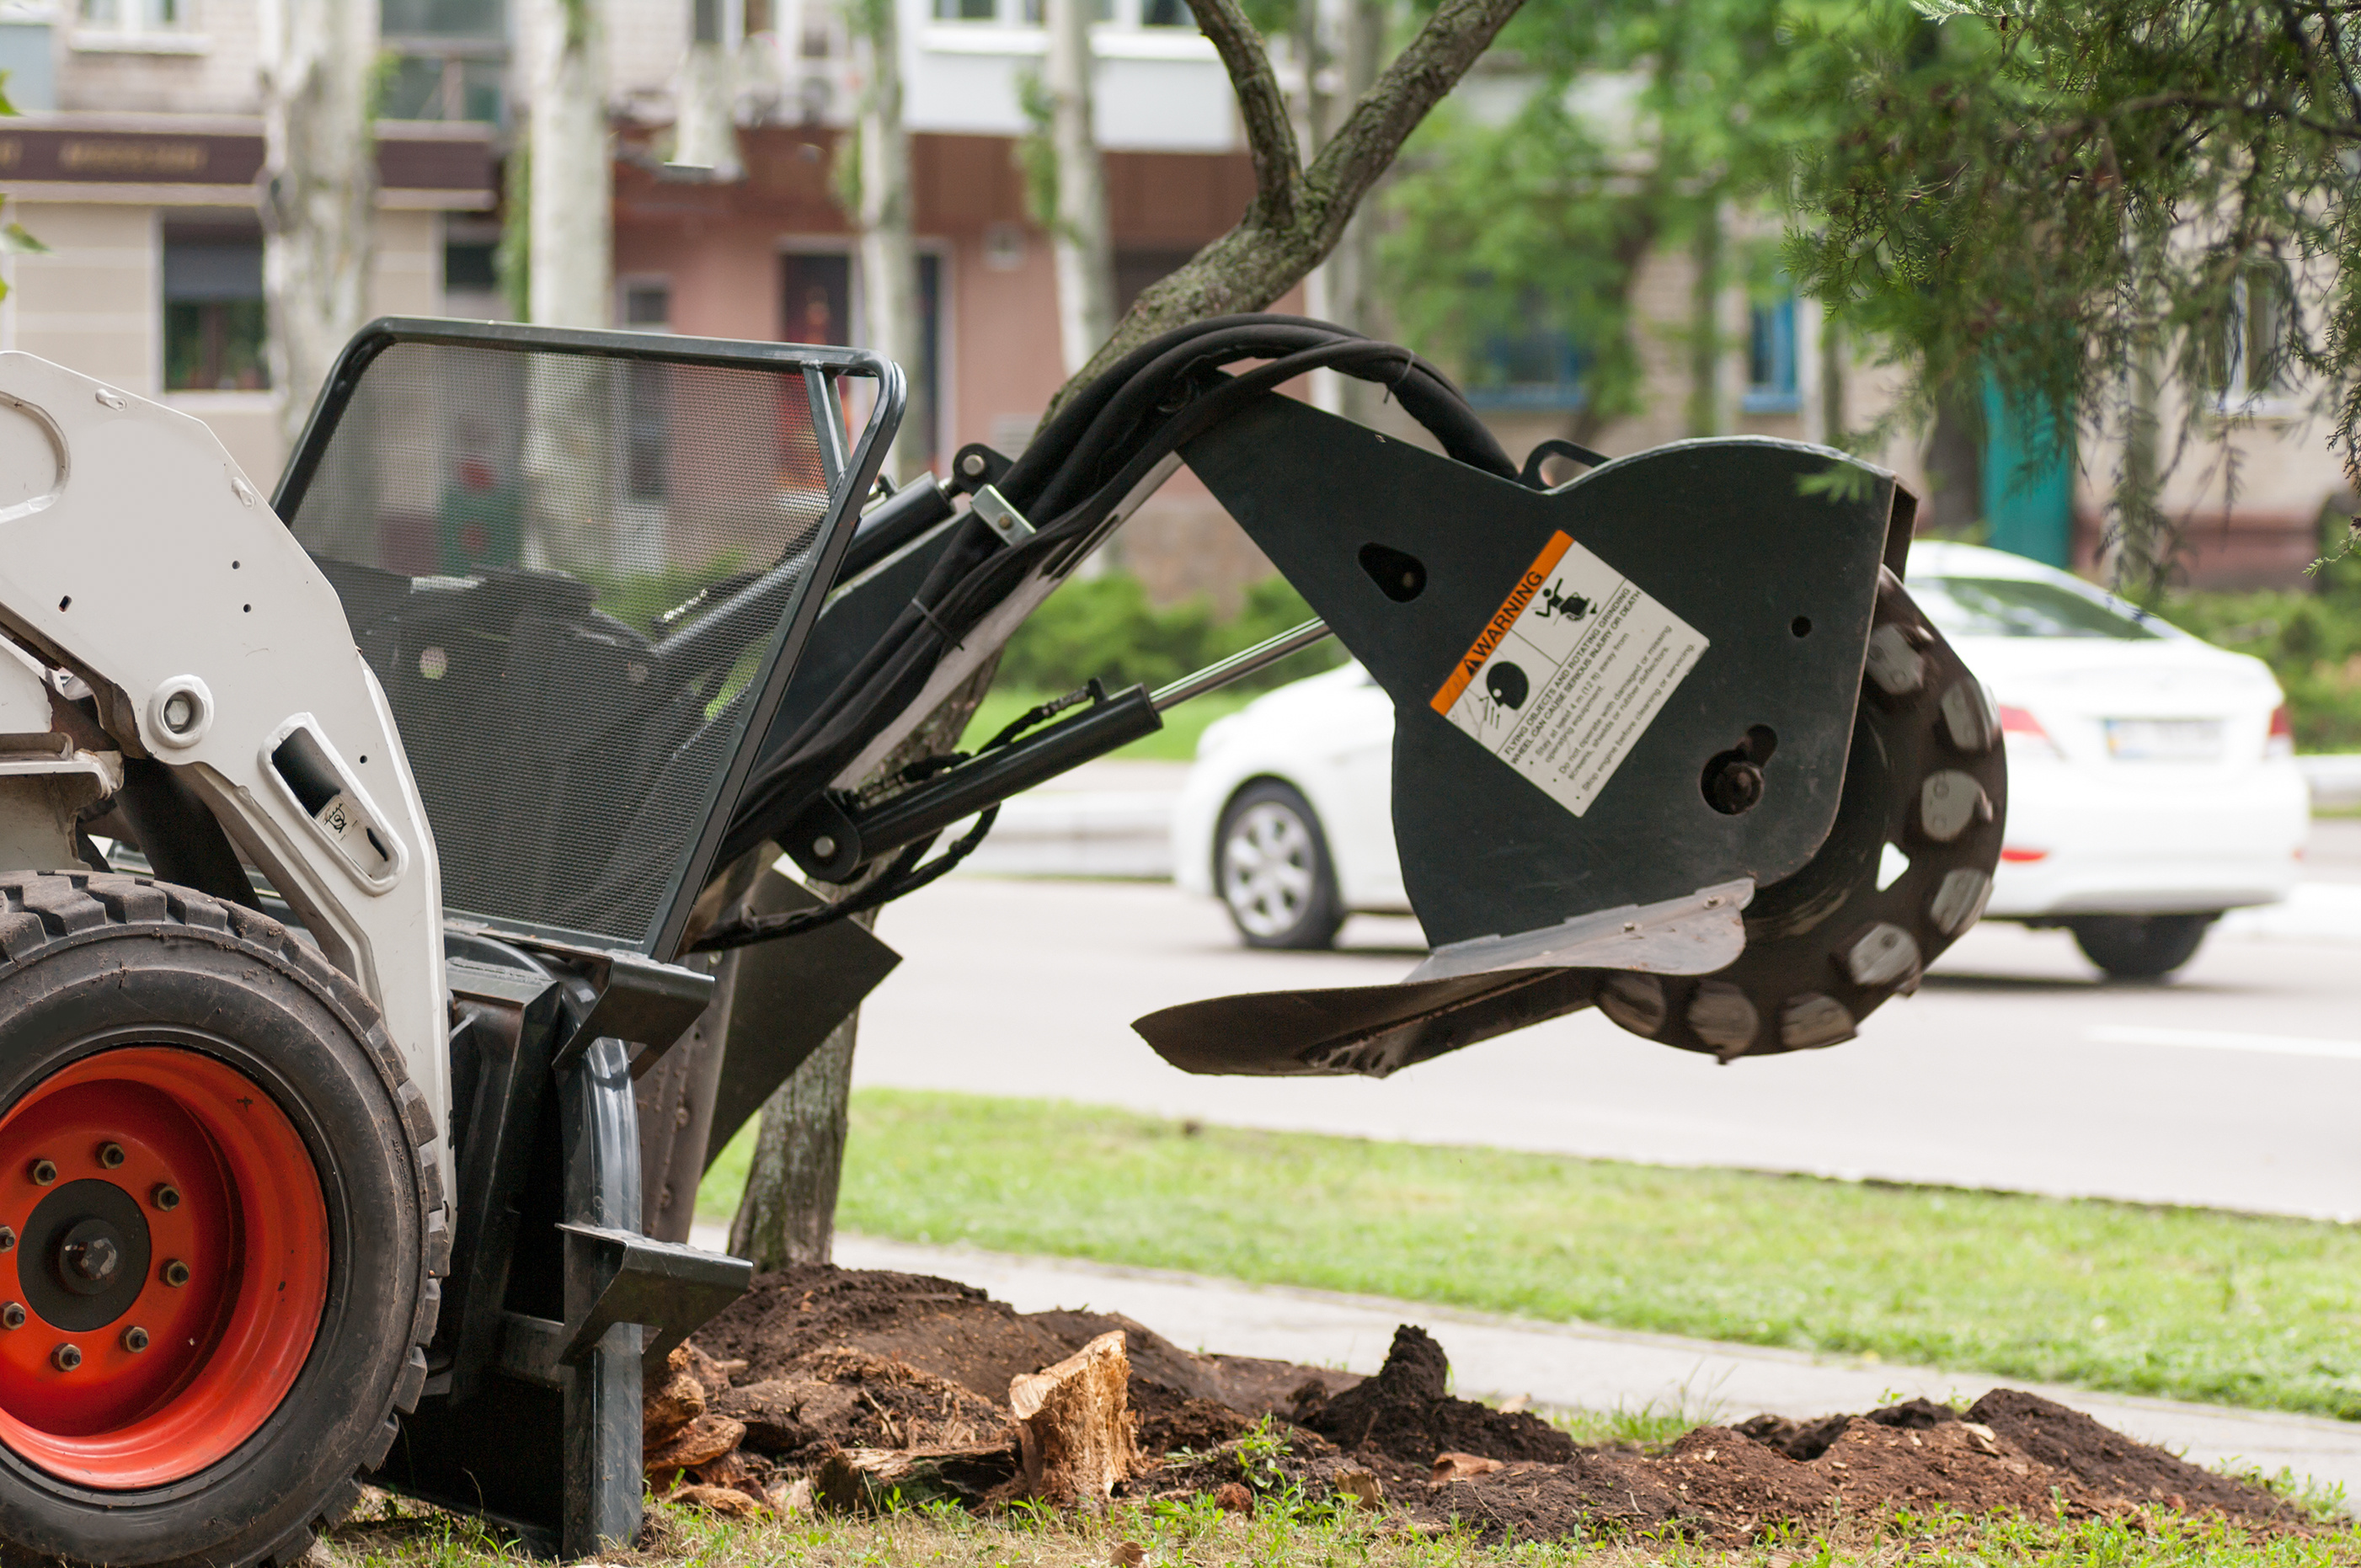 DON'T SETTLE – HIRE THE BEST TREE SERVICE IN ORLANDO